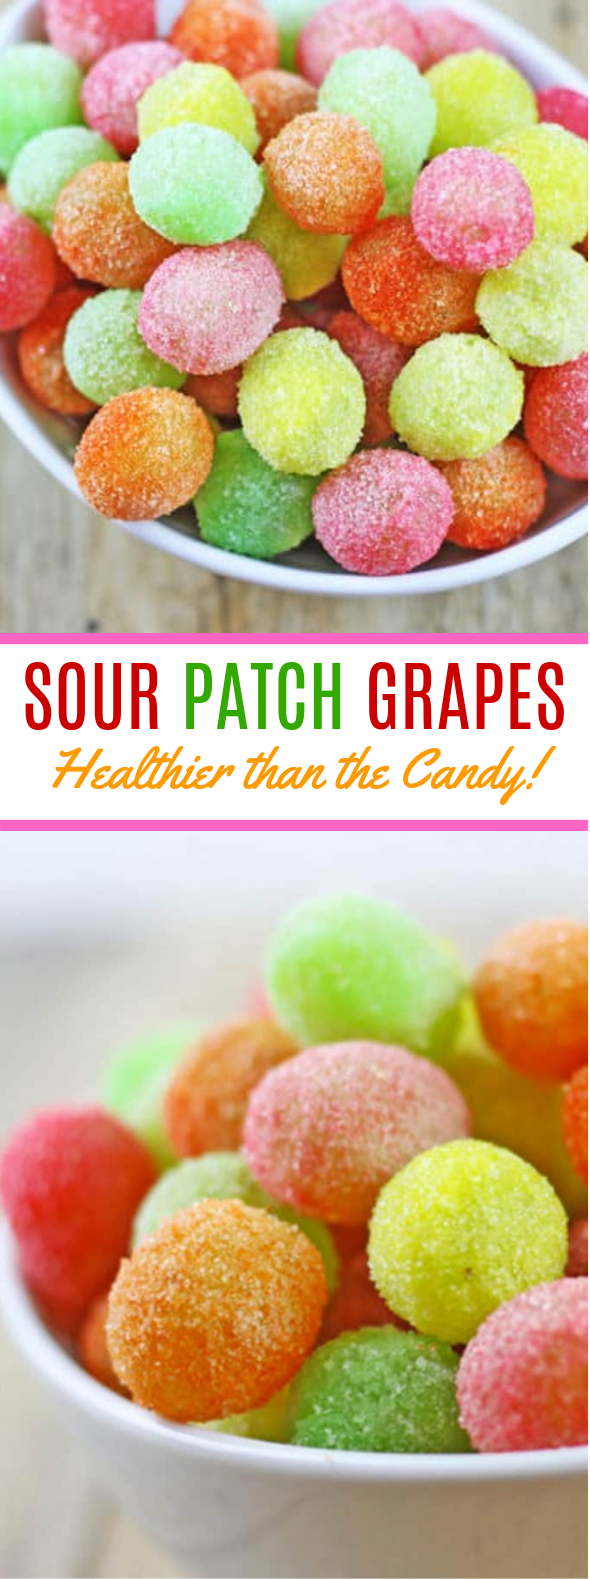 Sour Patch Grapes – Healthier than the Candy! #desserts #sweets